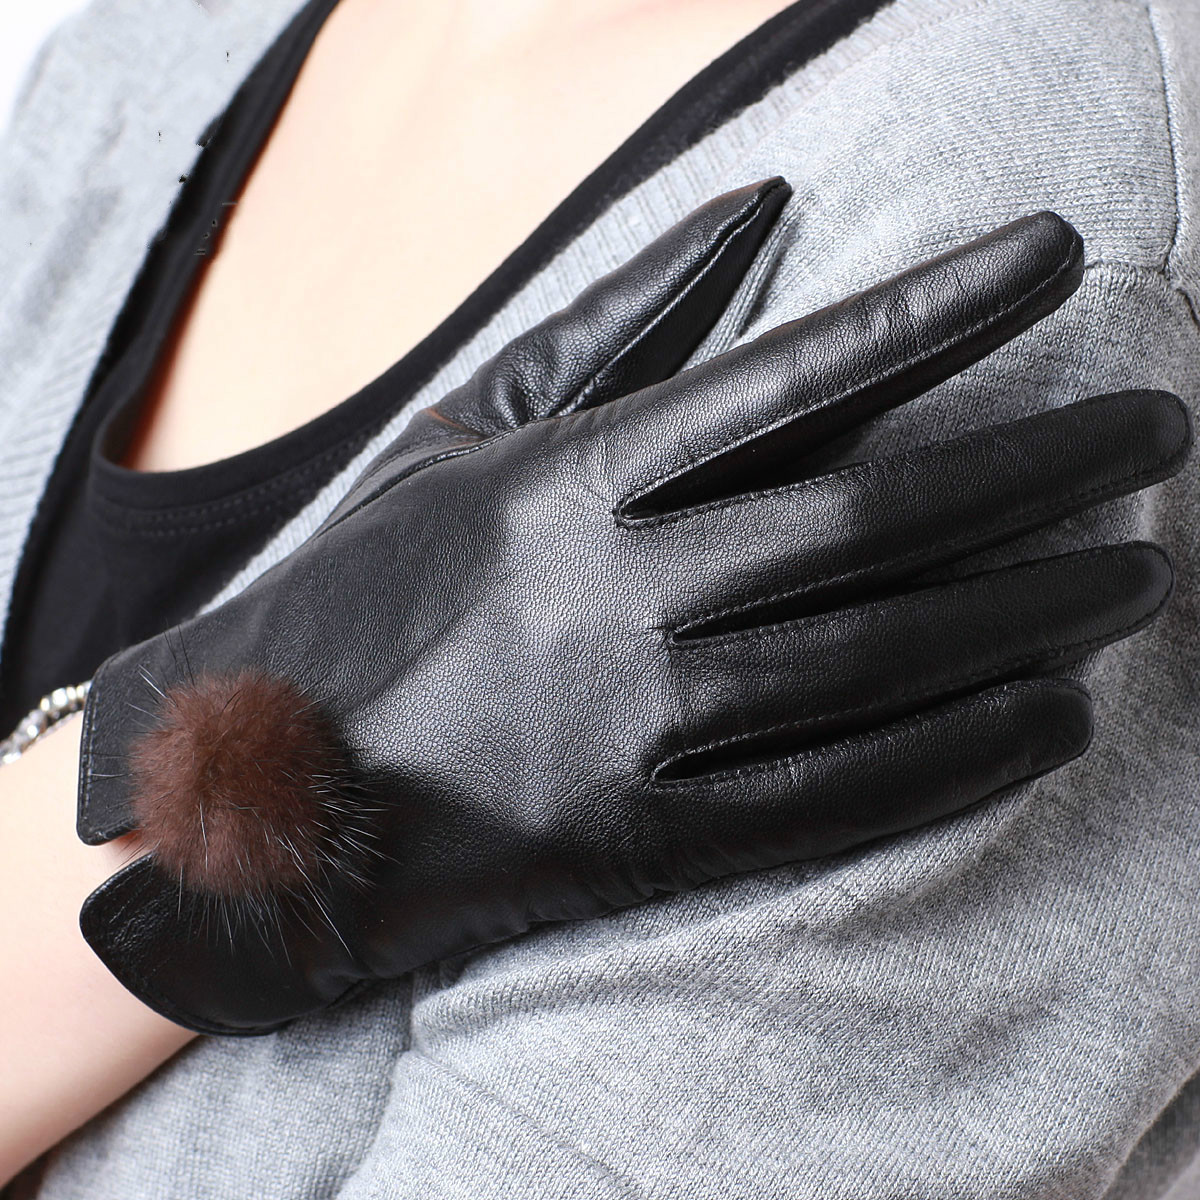 Buy ladies leather gloves online - Fashion Winter Women Black Brown Genuine Leather Gloves Sheepskin Gloves Warm Lady Leather Gloves Outdoor Glove